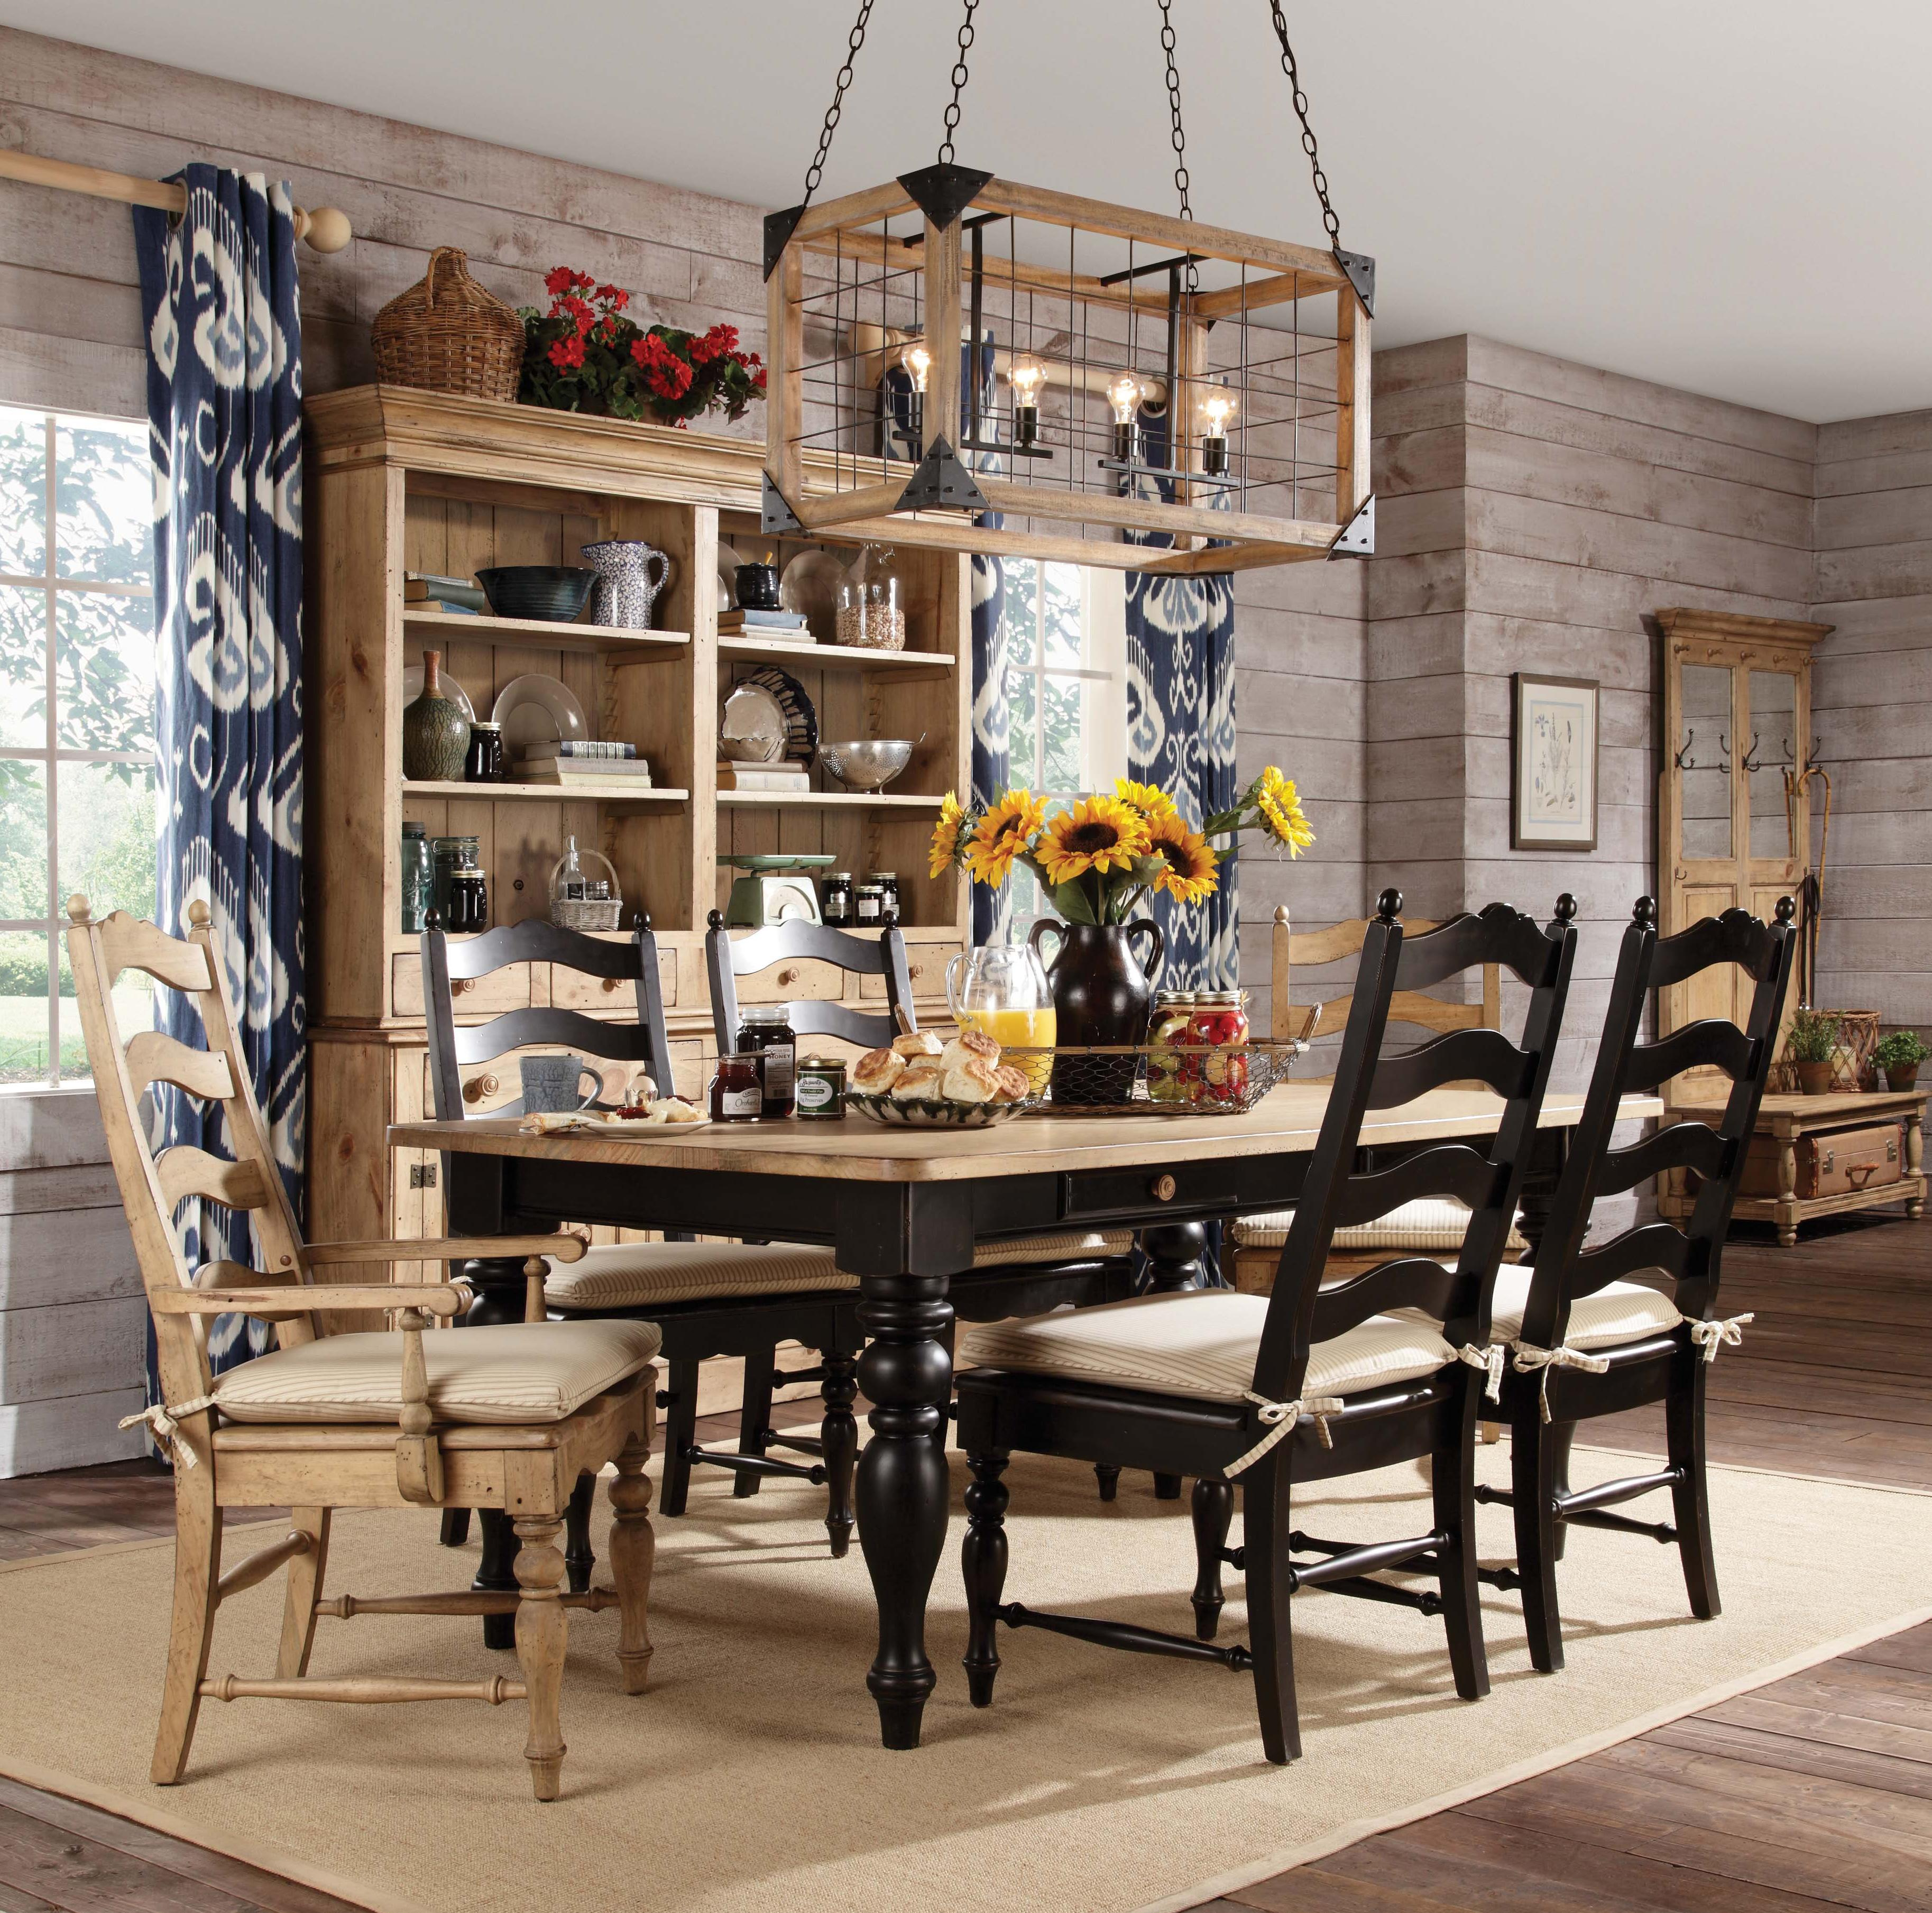 Black farmhouse chairs - 7 Piece Dining Set With Farmhouse Leg Table Ladderback Chairs